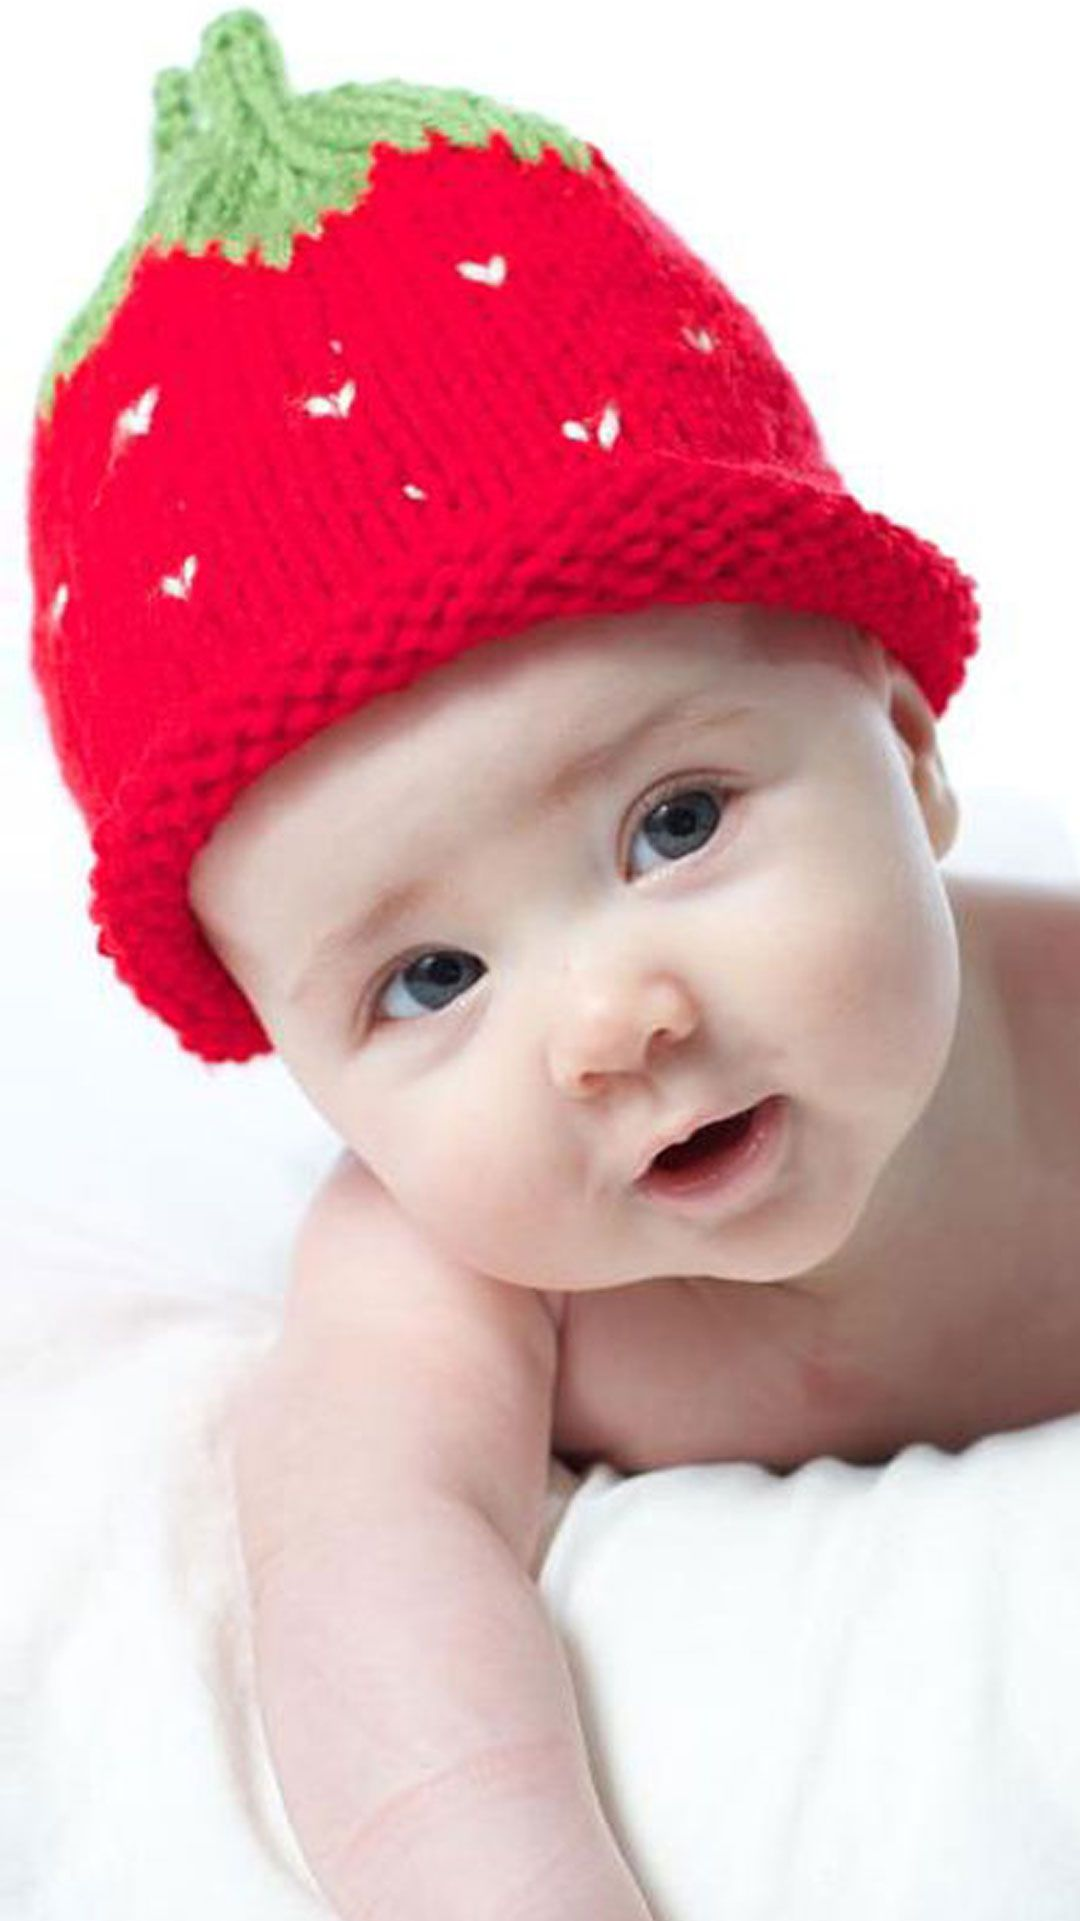 a81217a92e9 How to Knit a Strawberry Baby Hat with Free Knitting Pattern with Video  Tutorial by Studio Knit  StudioKnit  knithat  knitbaby  knittingidea ...